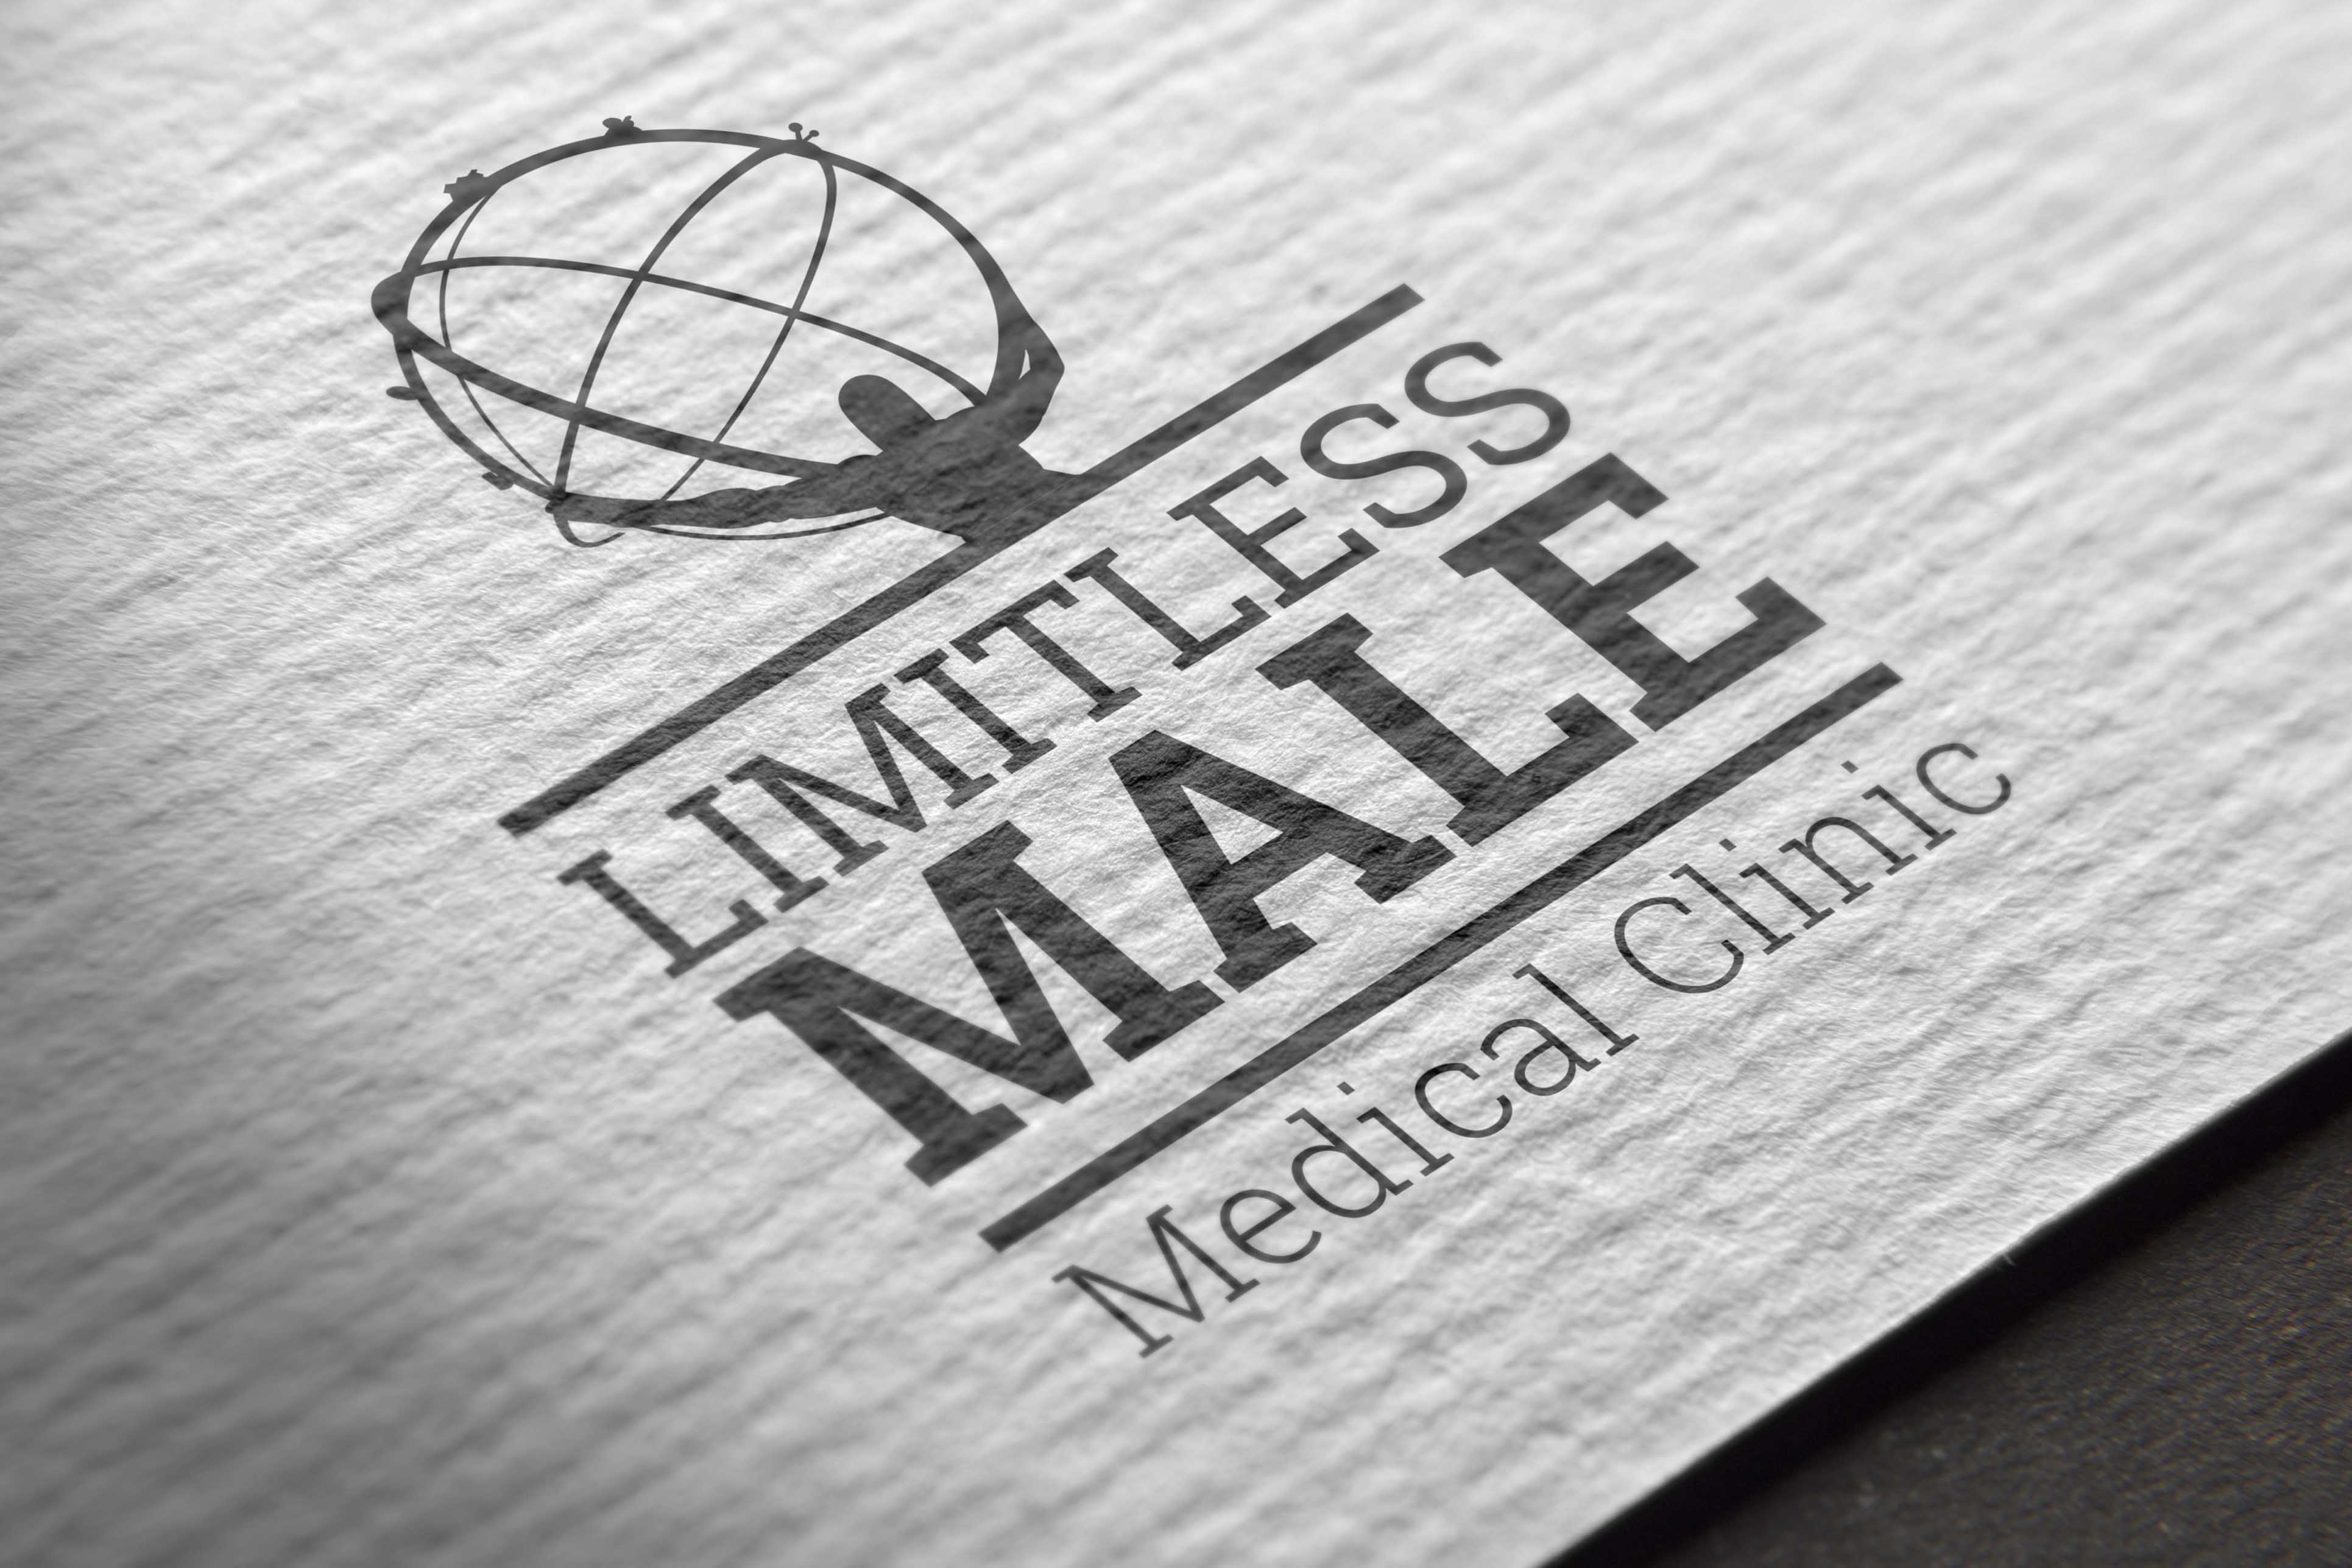 Limitless Male Medical Clinic – Mosaic Visuals Design